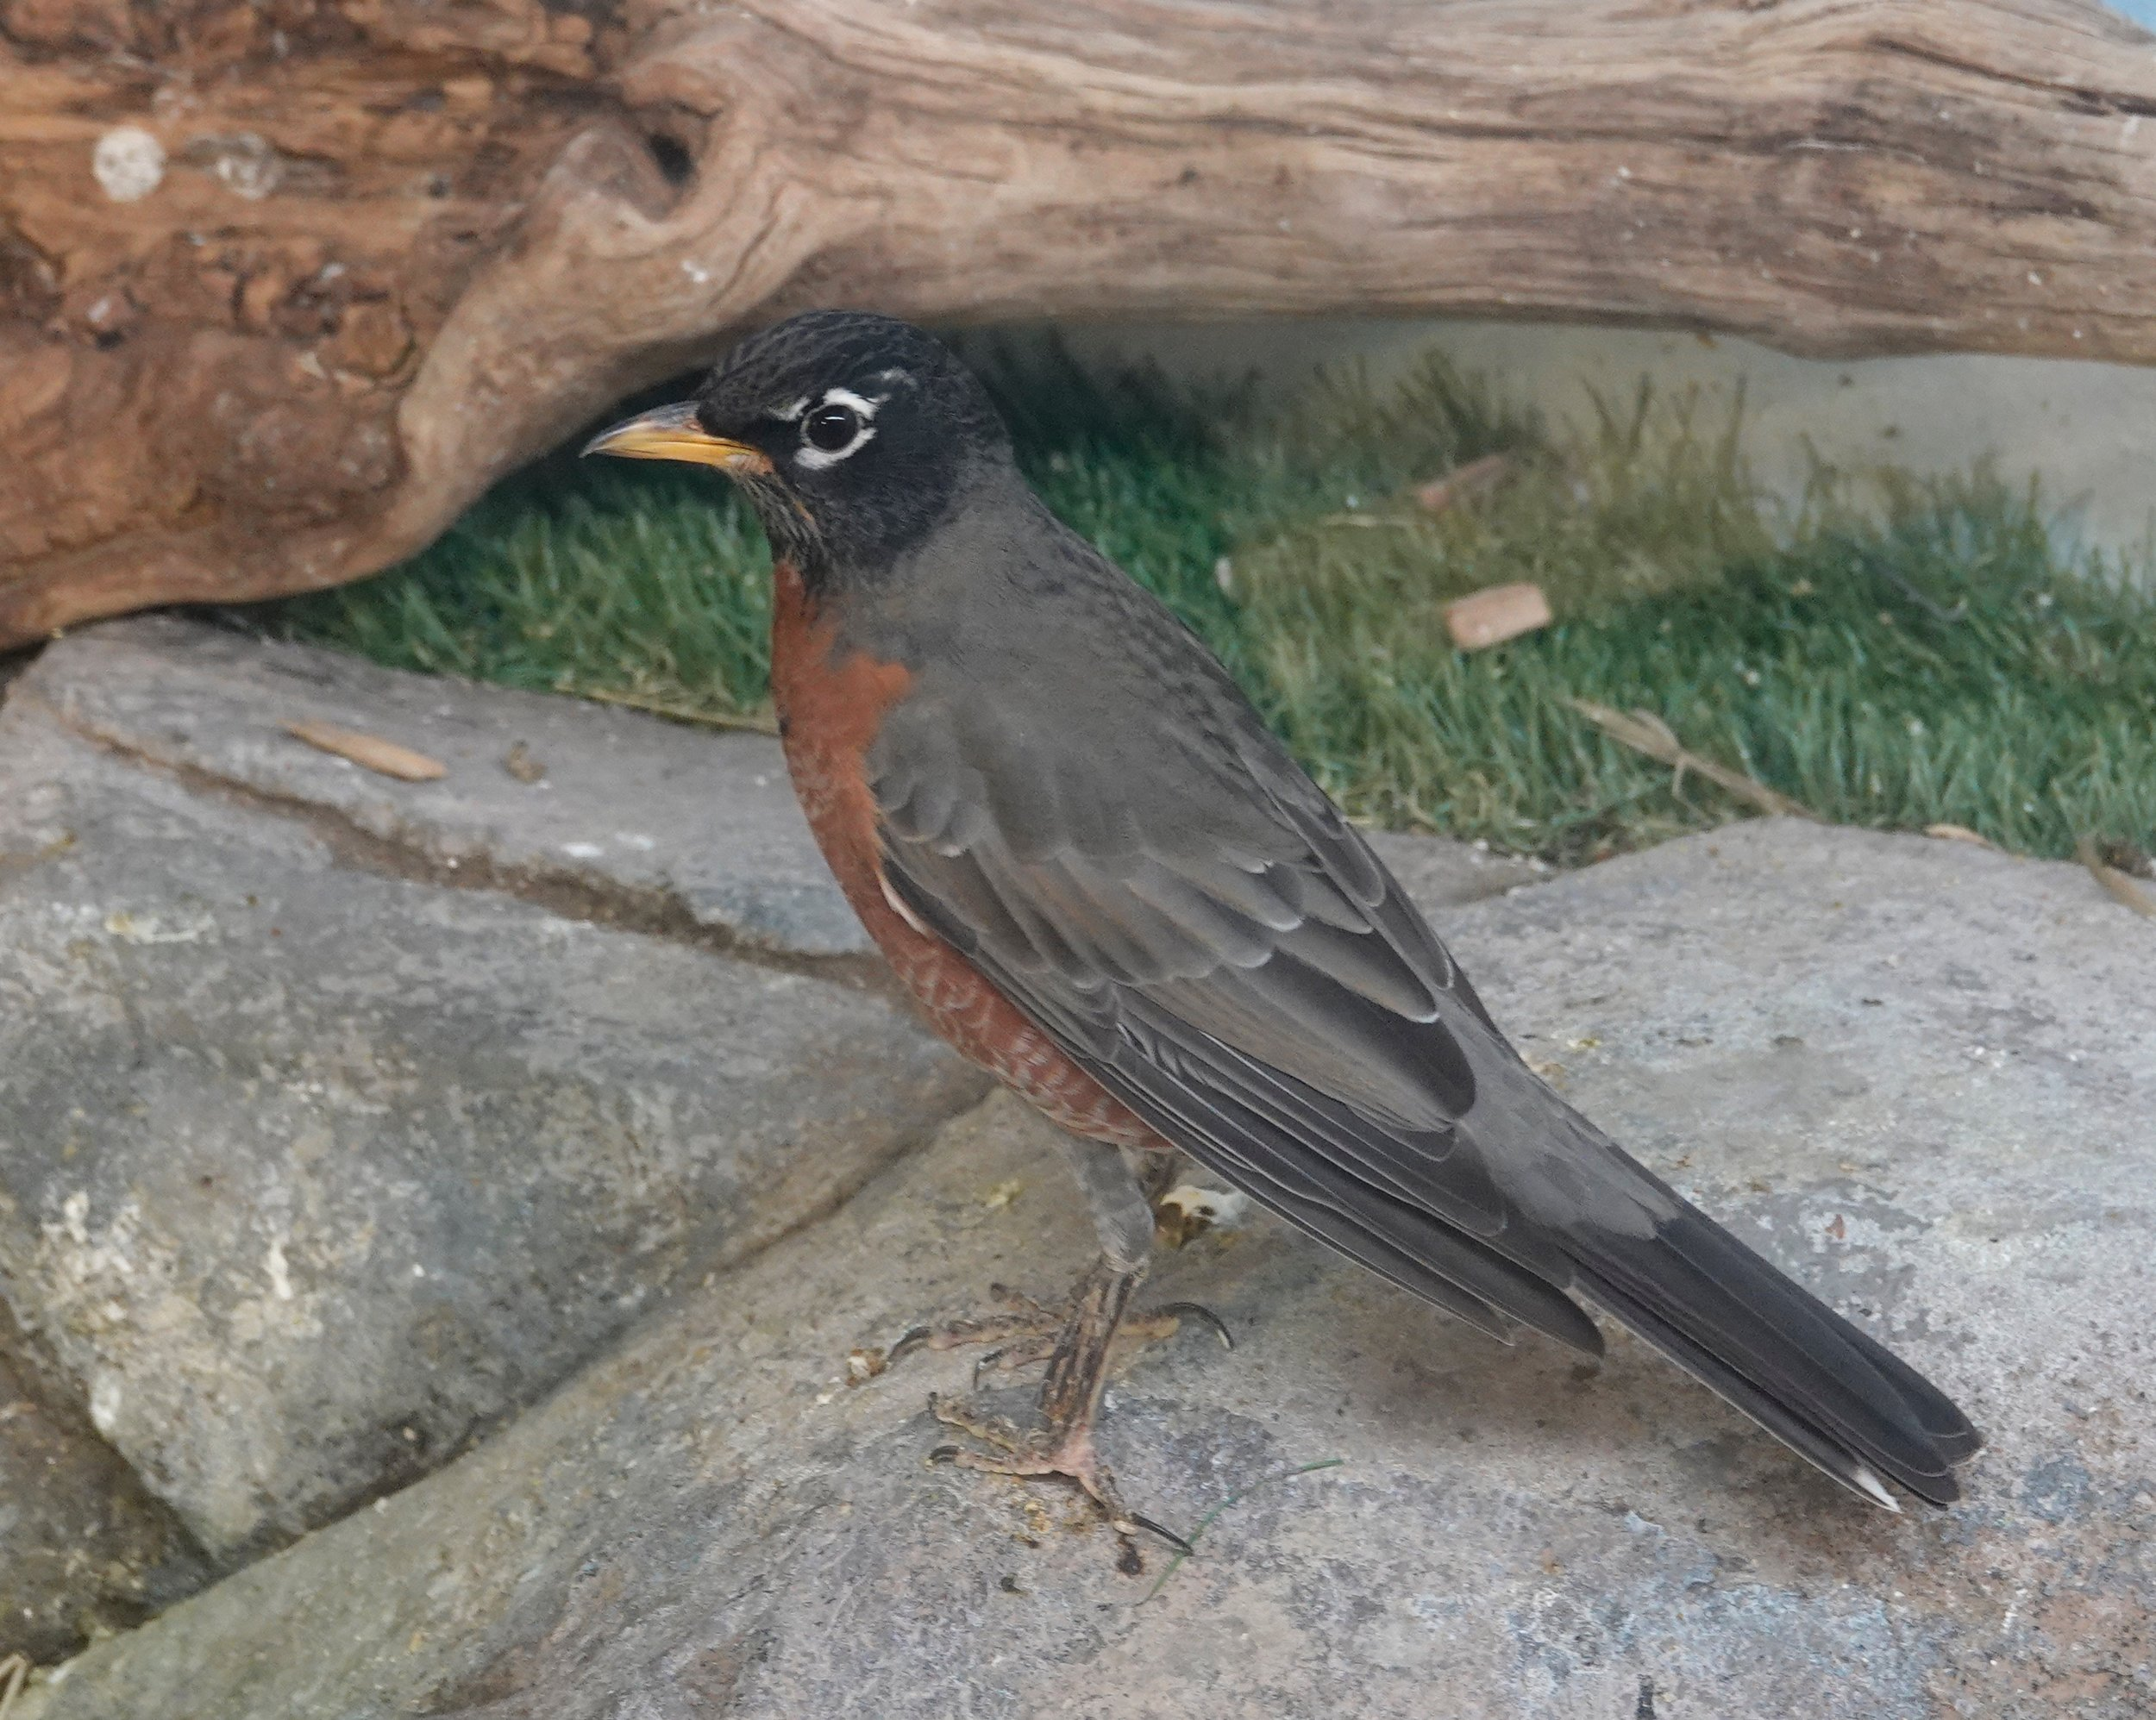 The drunken birds of Minnesota have been popular items in the media, yet no robin has ever lost its driver's license.